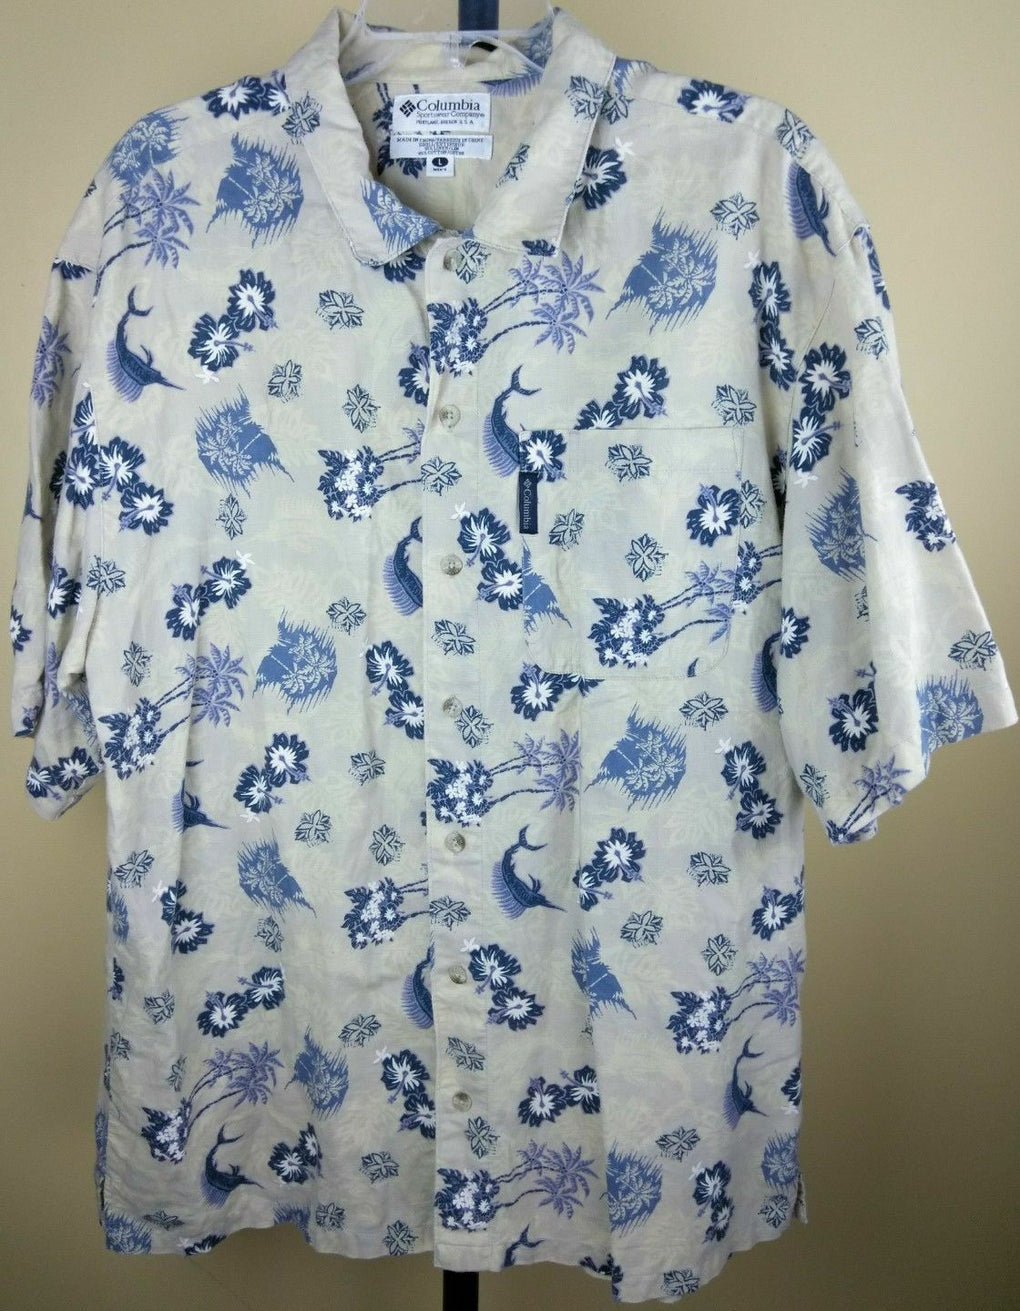 COLUMBIA Marlin Fish Linen Button-Down Hawaiian Men's Camp Shirt LARGE SS - Fazoom